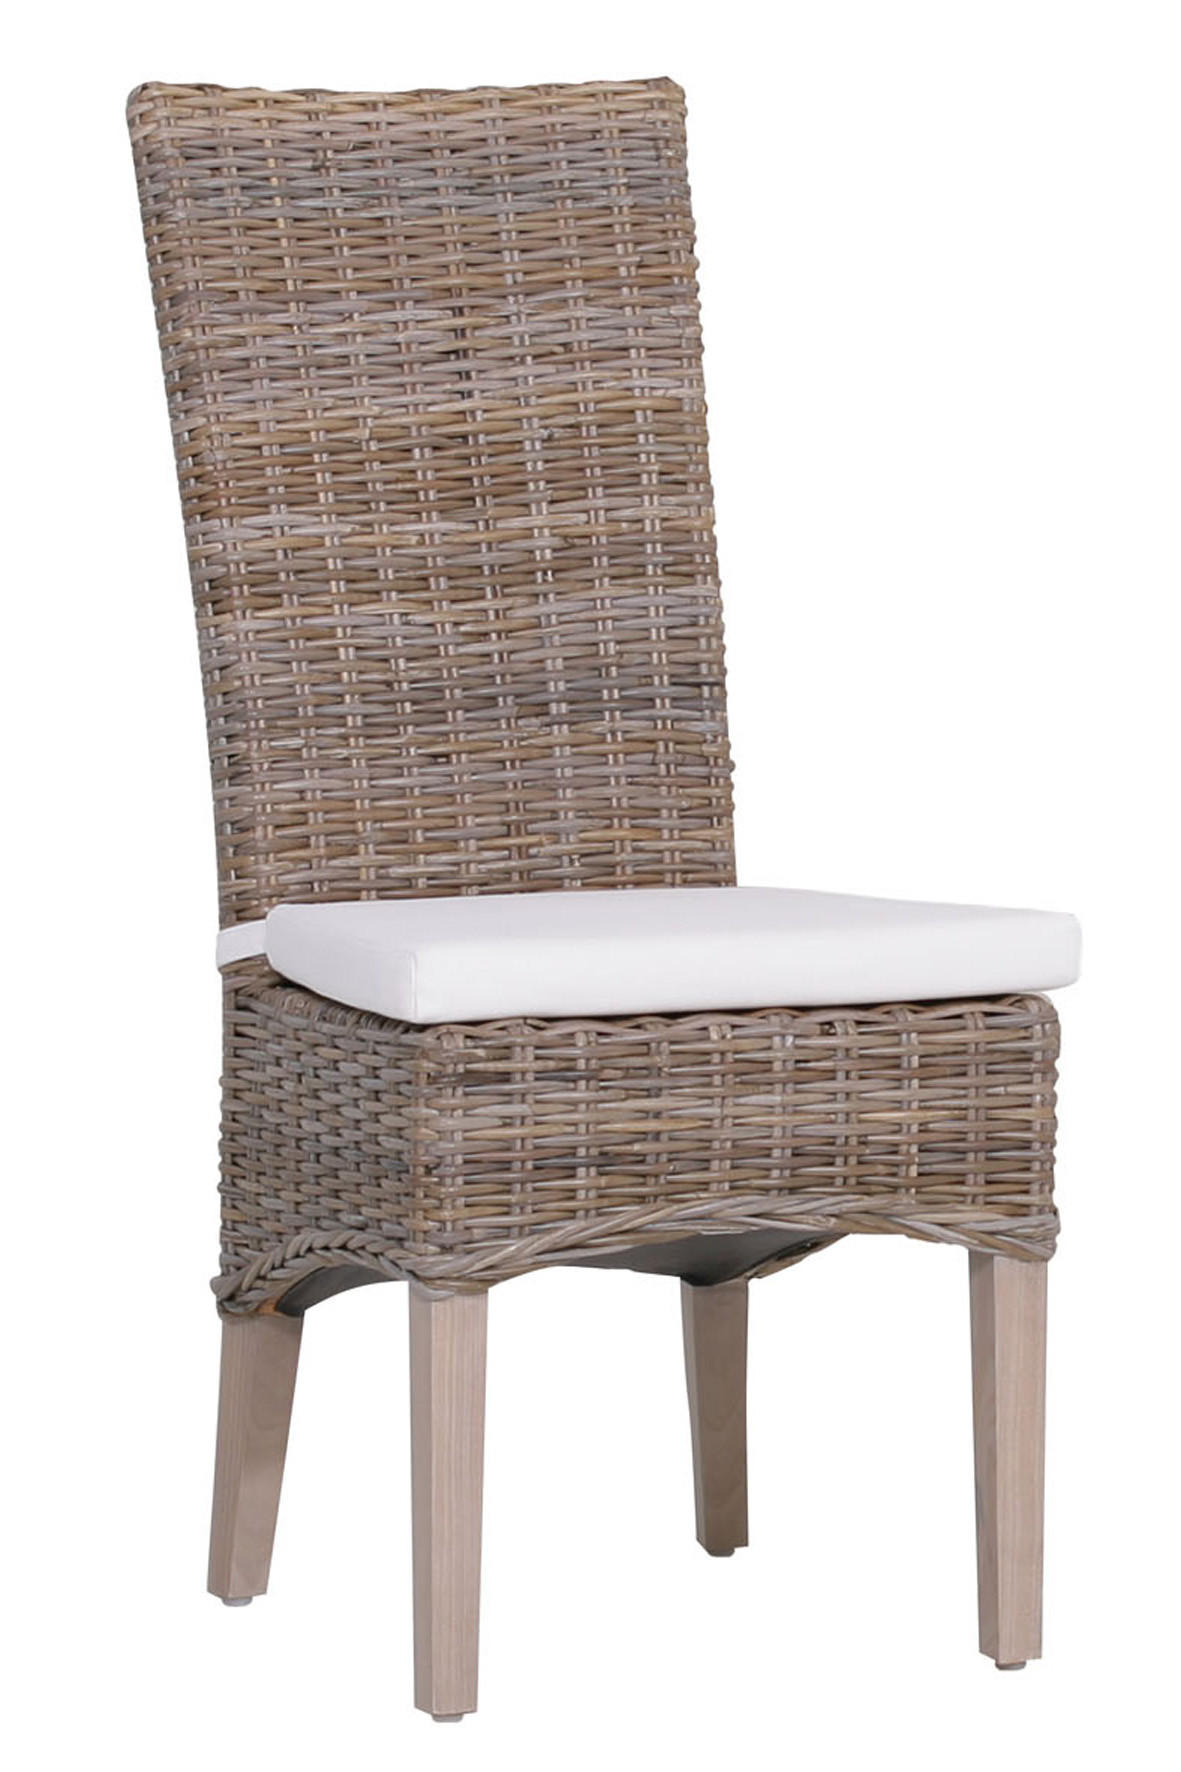 Affordable Trendy Gallery Of Stuhl Sheesham Massiv Grau Grau Lifestyle  Holzweitere With Stuhl Sheesham With Kchensthle Rattan With Holzsthle Wei  Grau